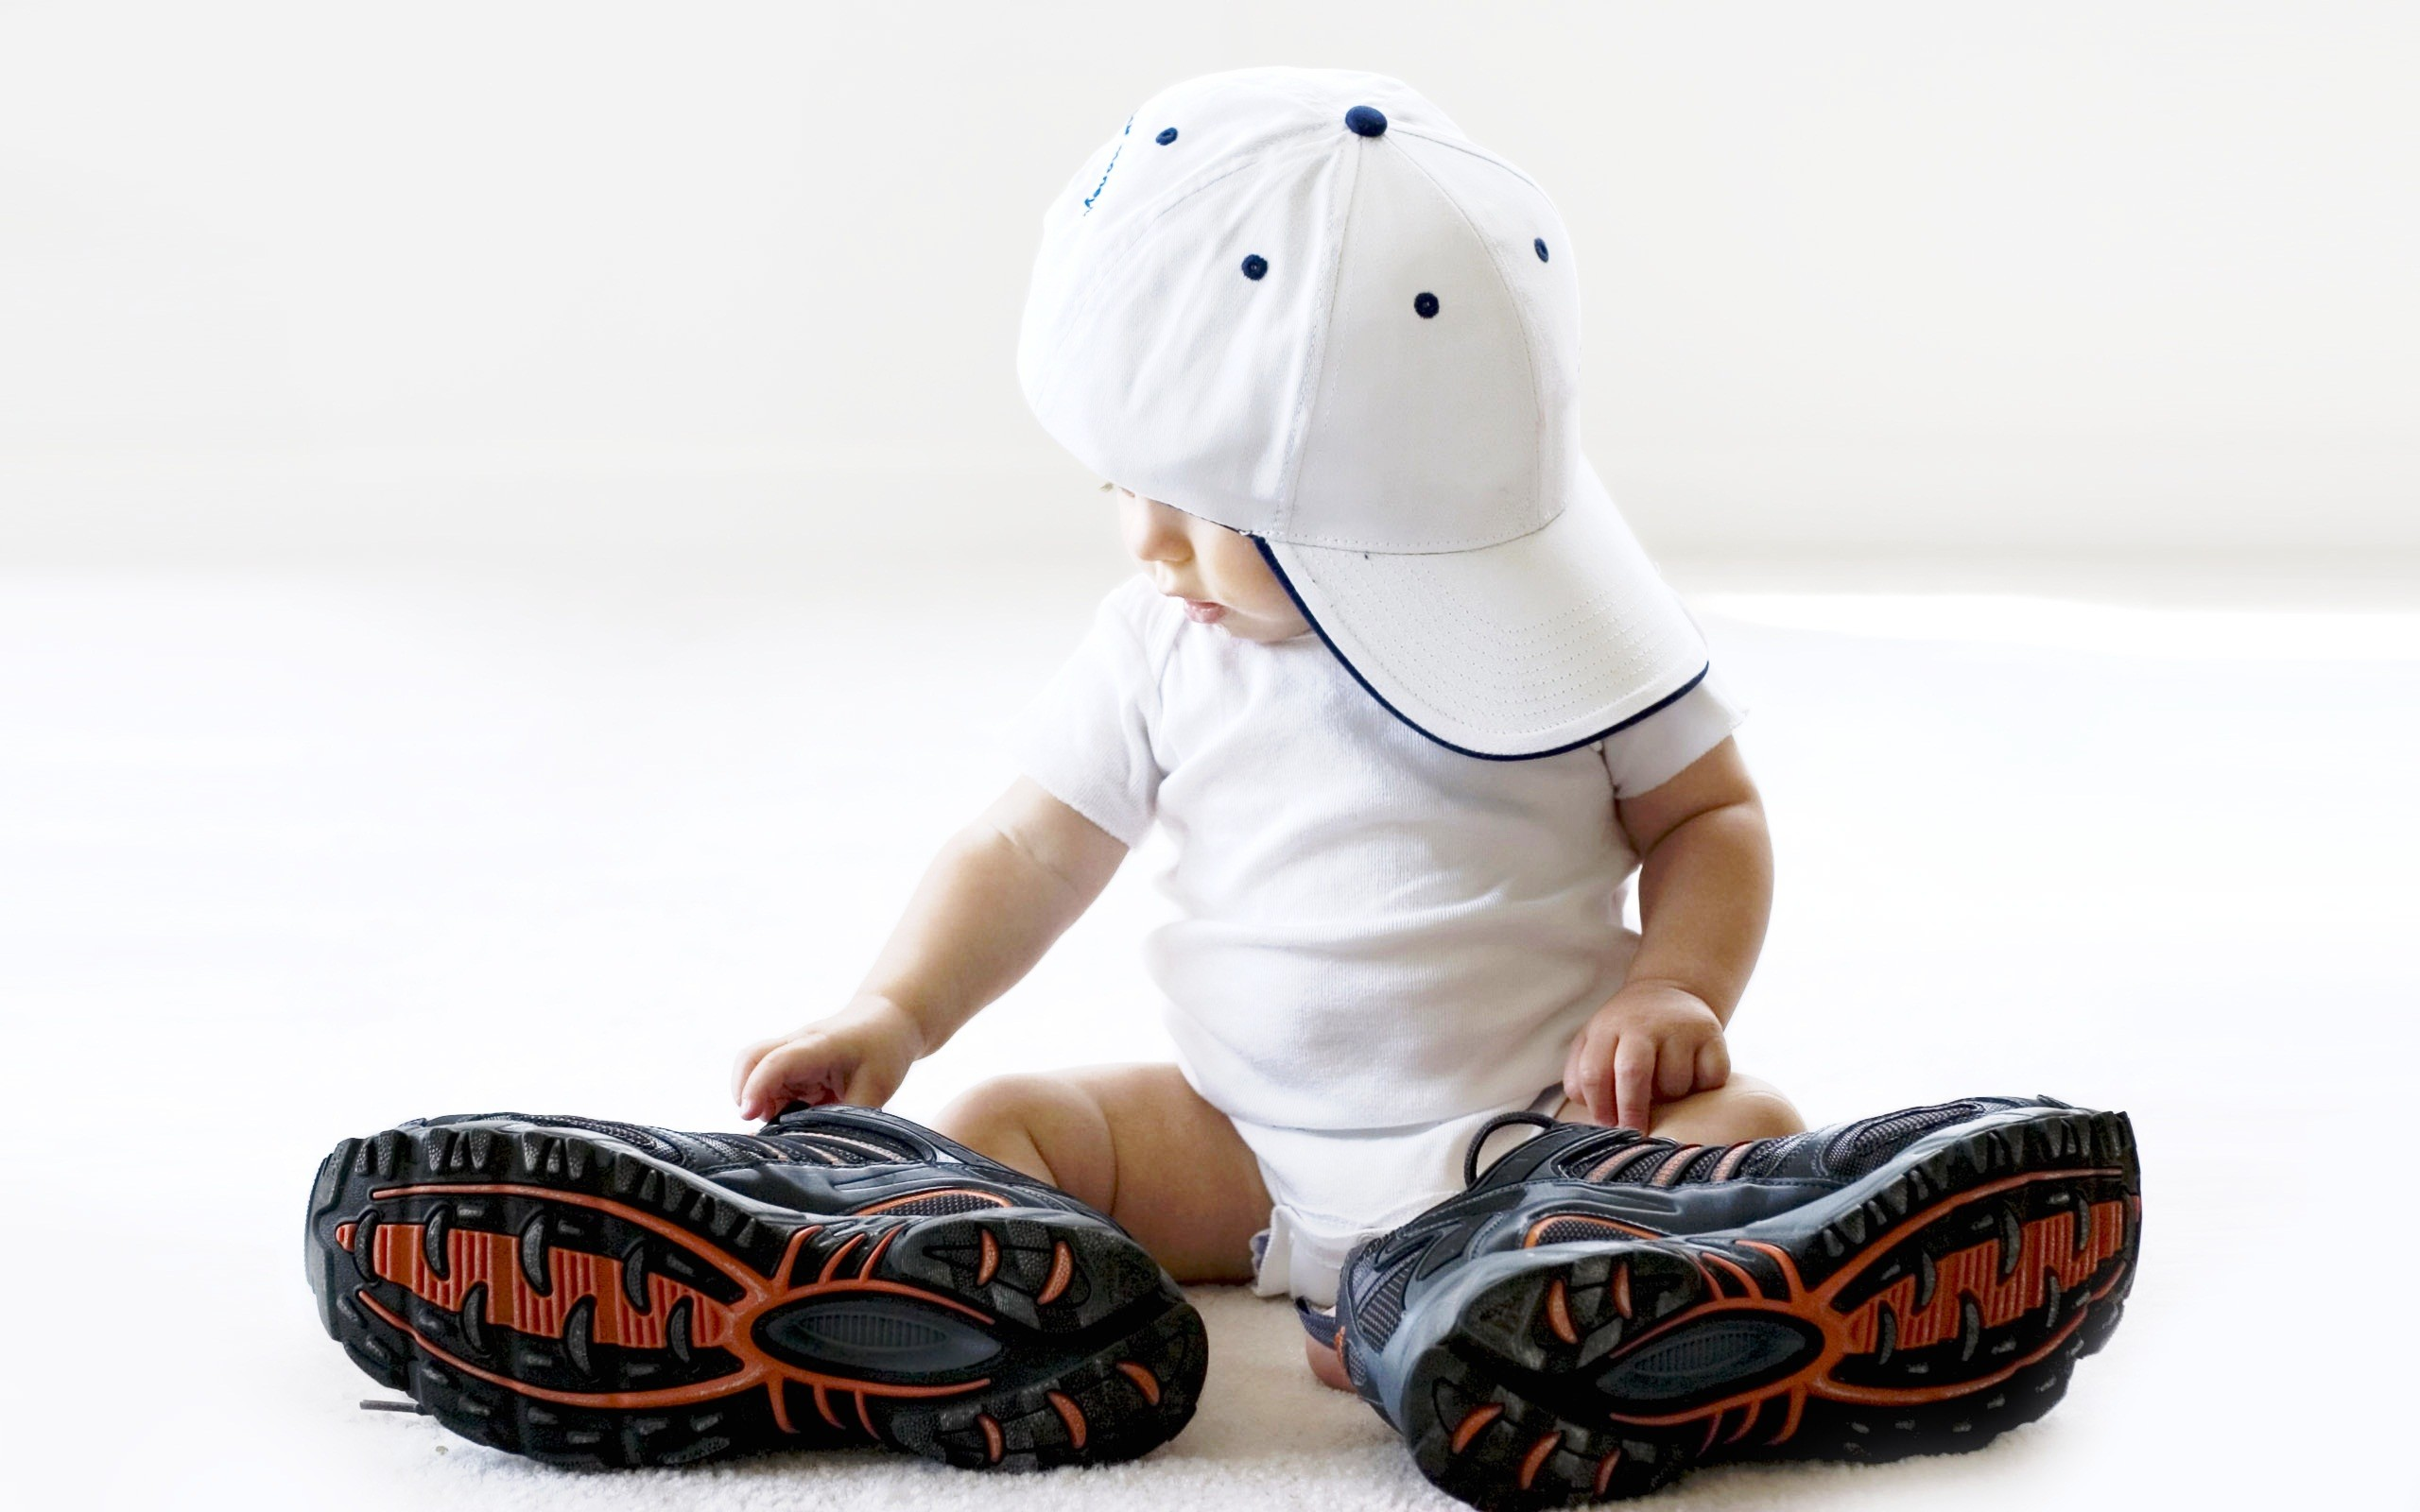 Cool Wallpapers for Boys (65+ images)